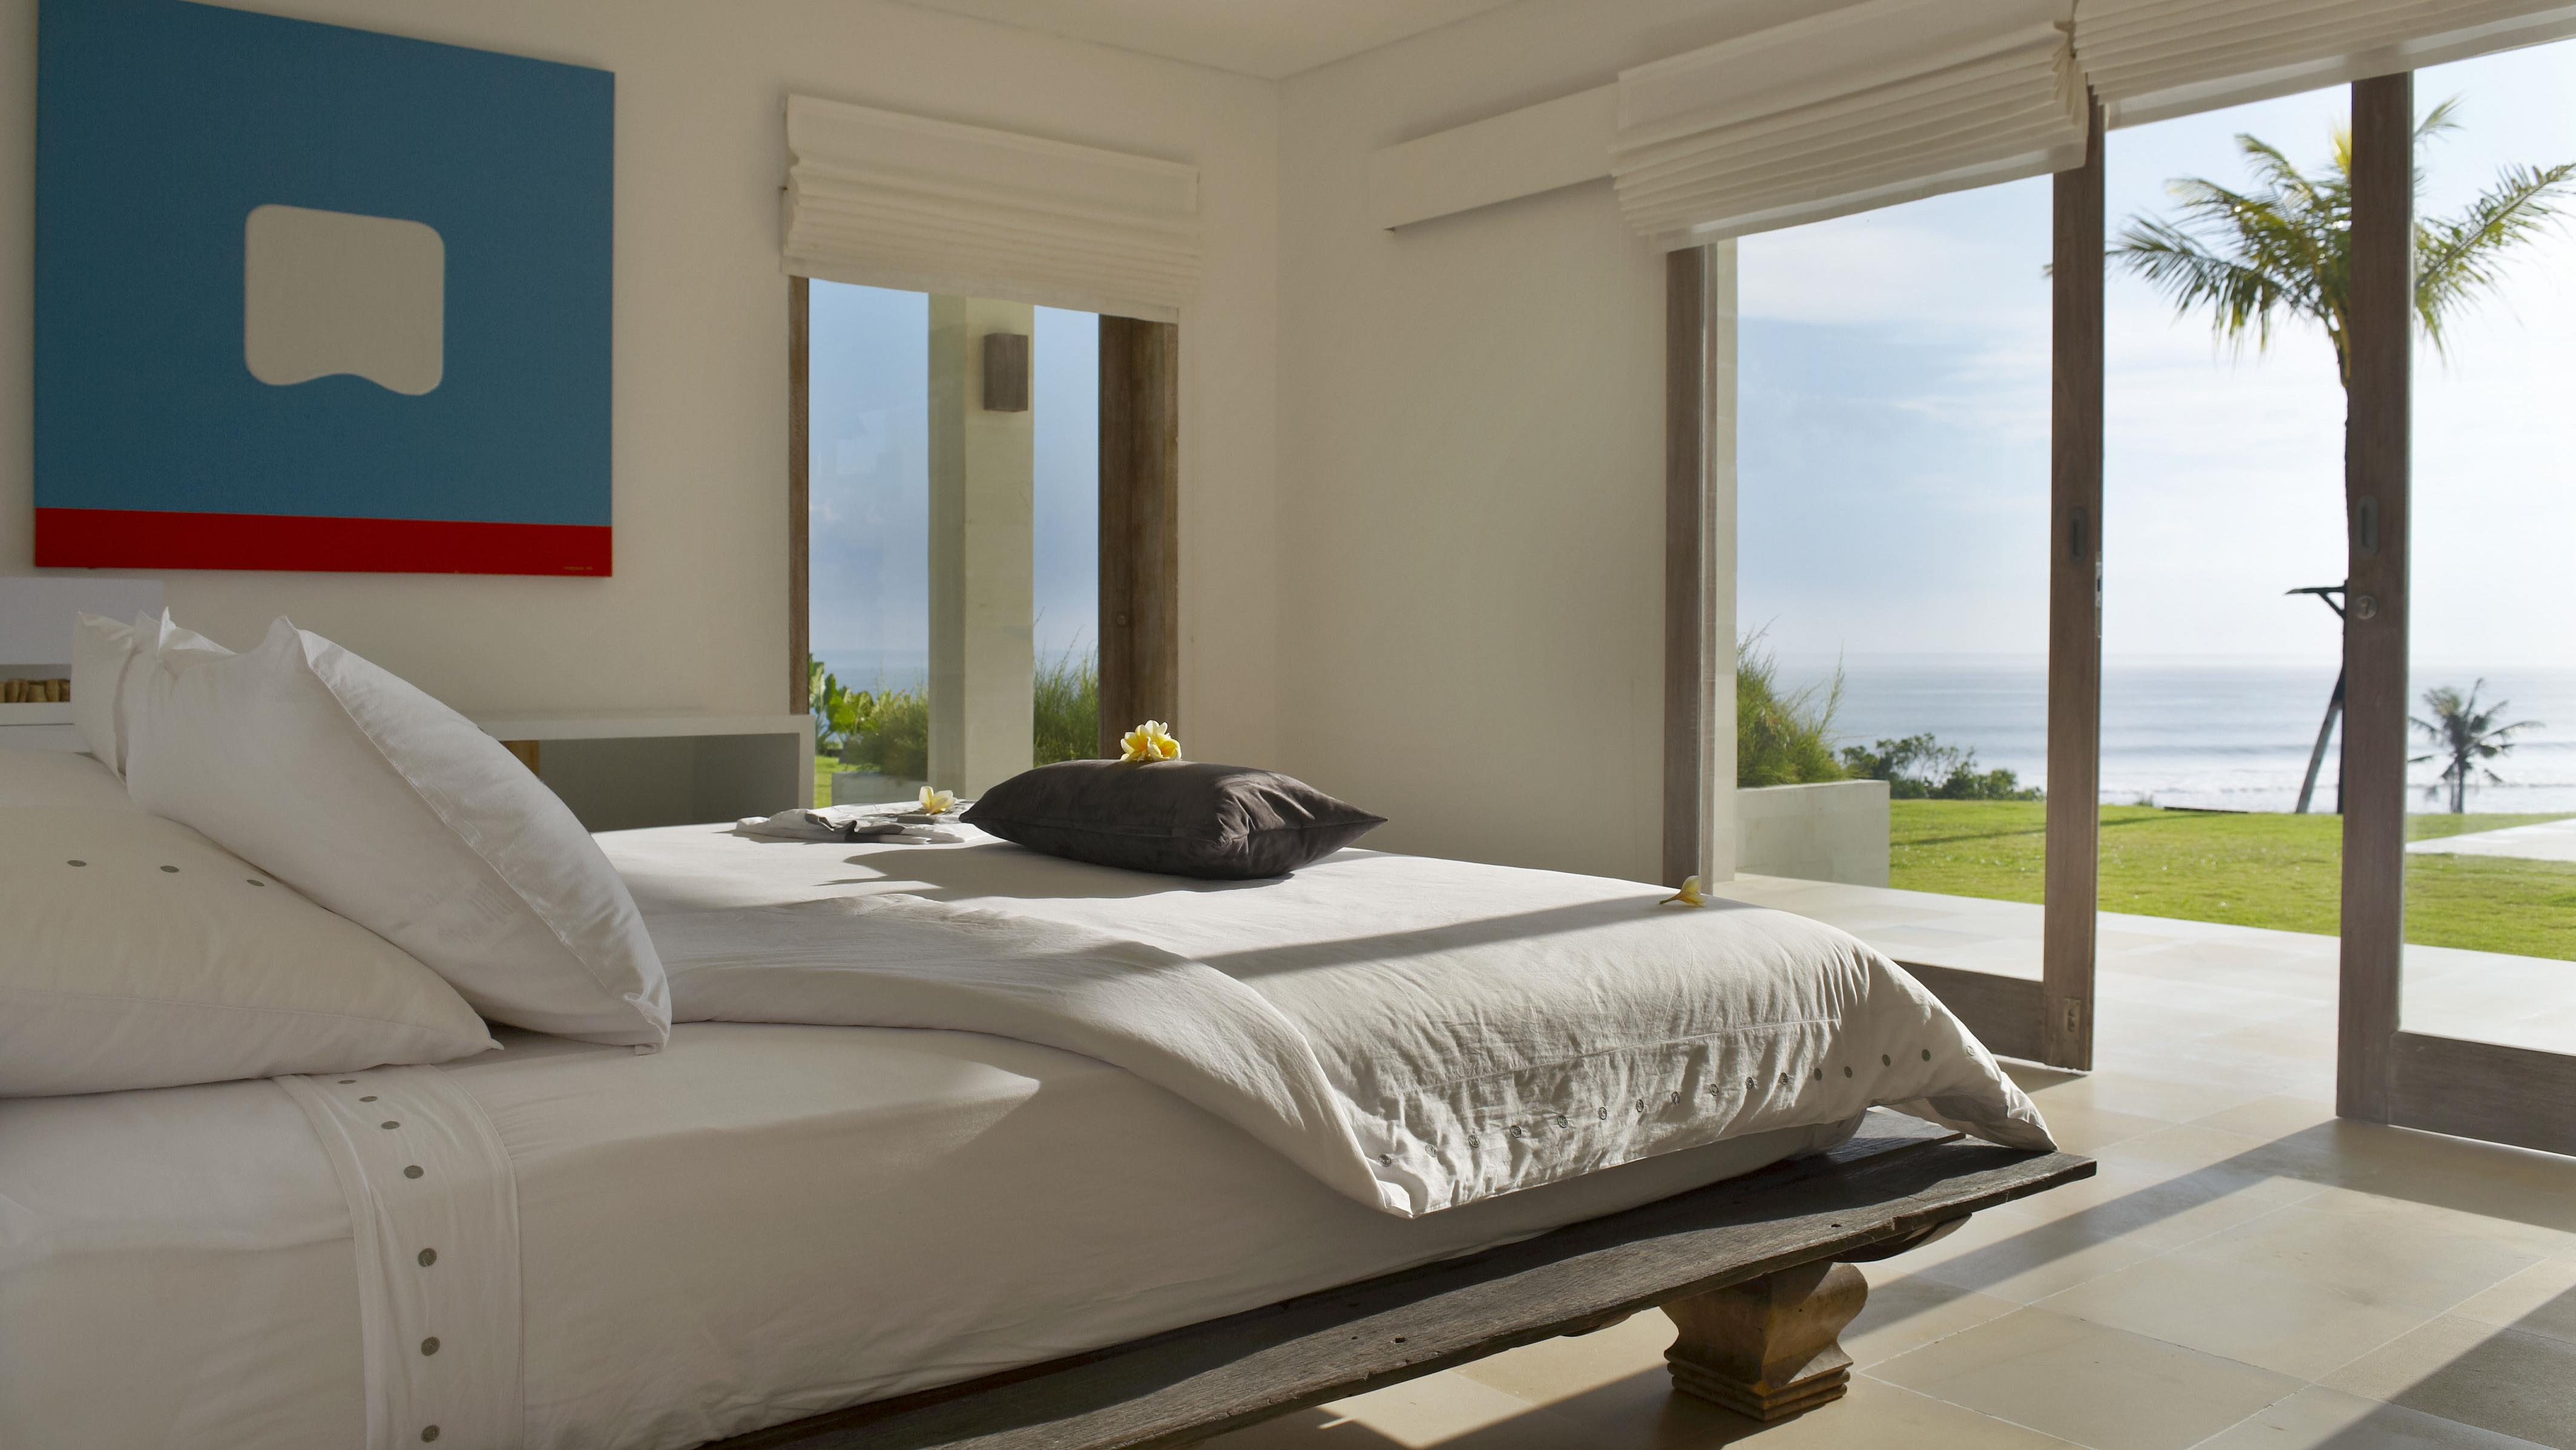 Bedroom with Sea View - Villa Babar - Tabanan, Bali